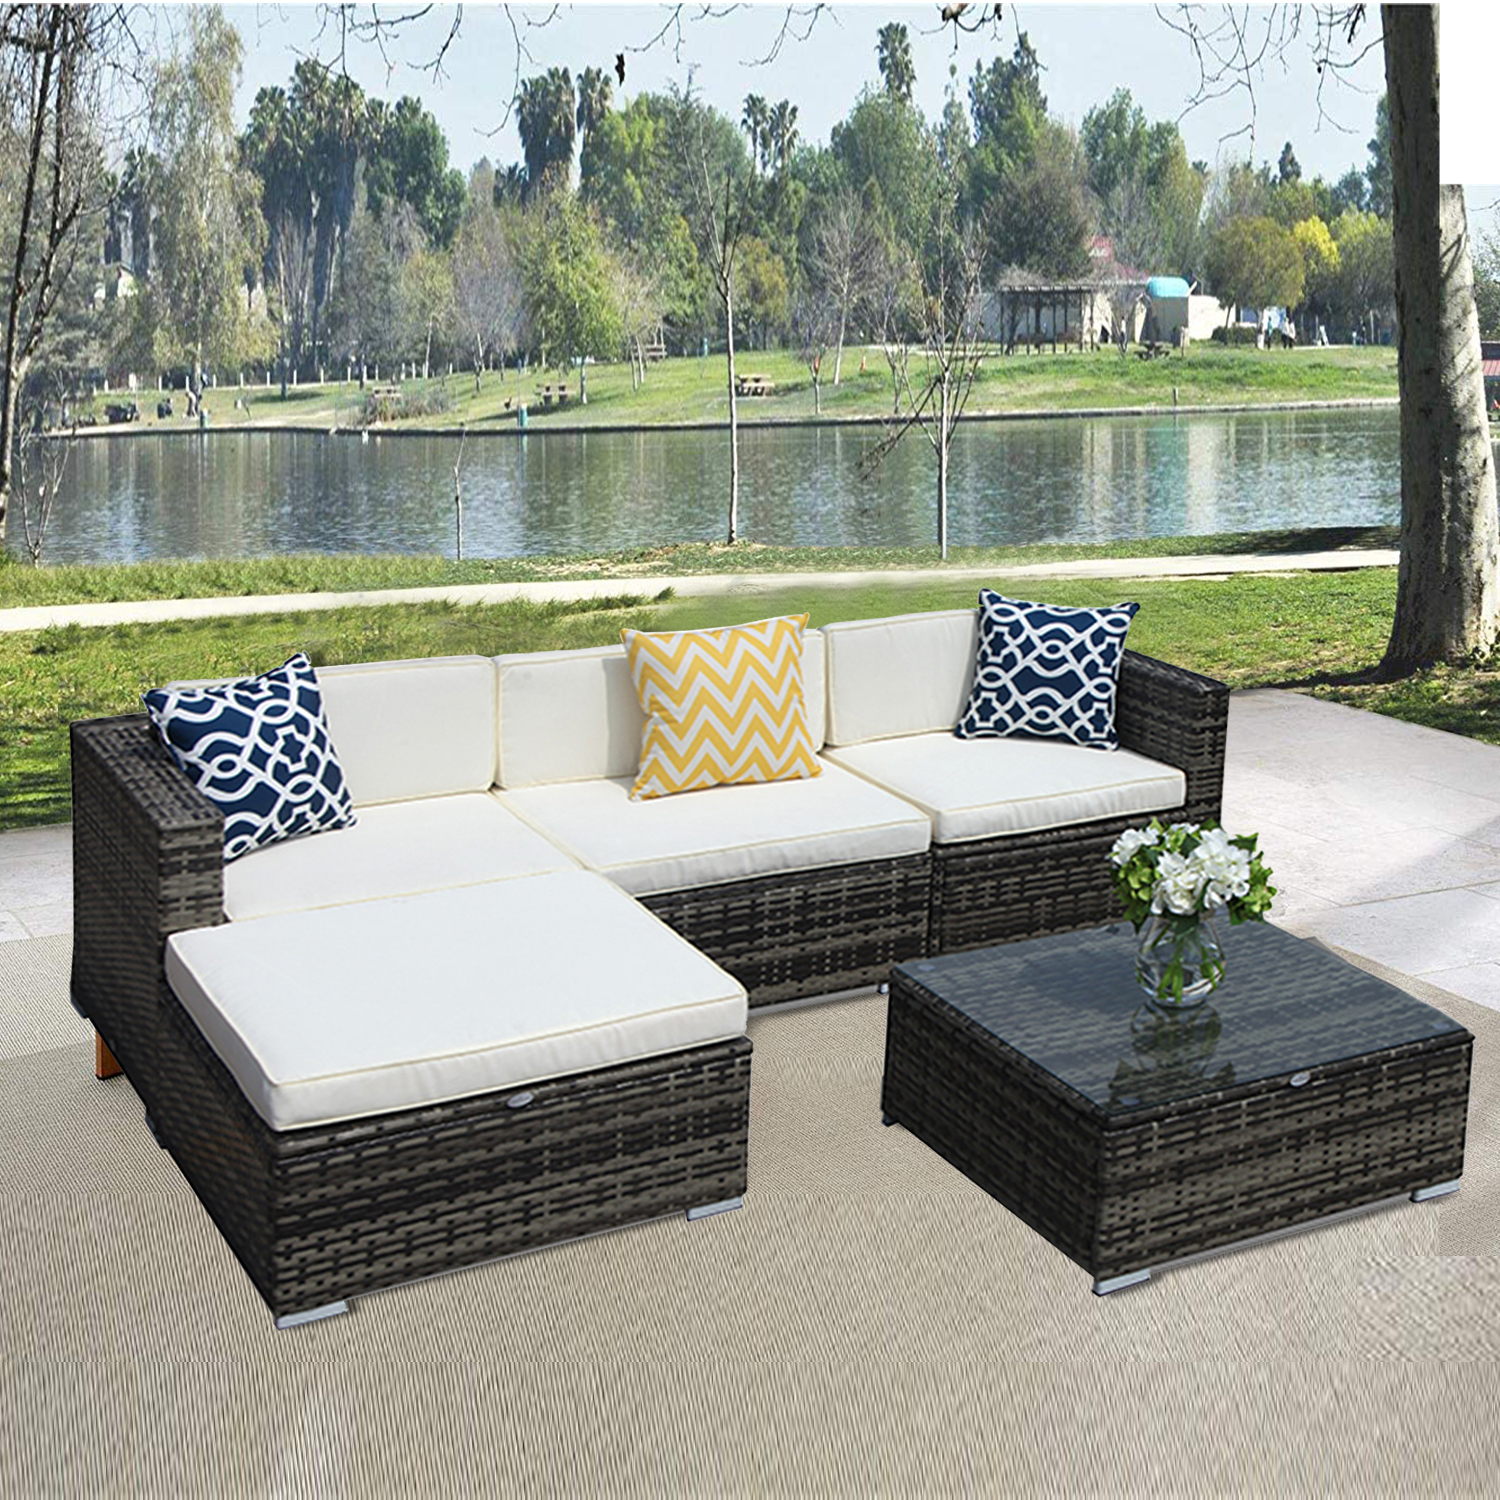 5pcs Patio Outdoor PE Wicker Rattan Sectional Furniture Set with Cream White Seat and Back Cushions, Steel Frame, Gray